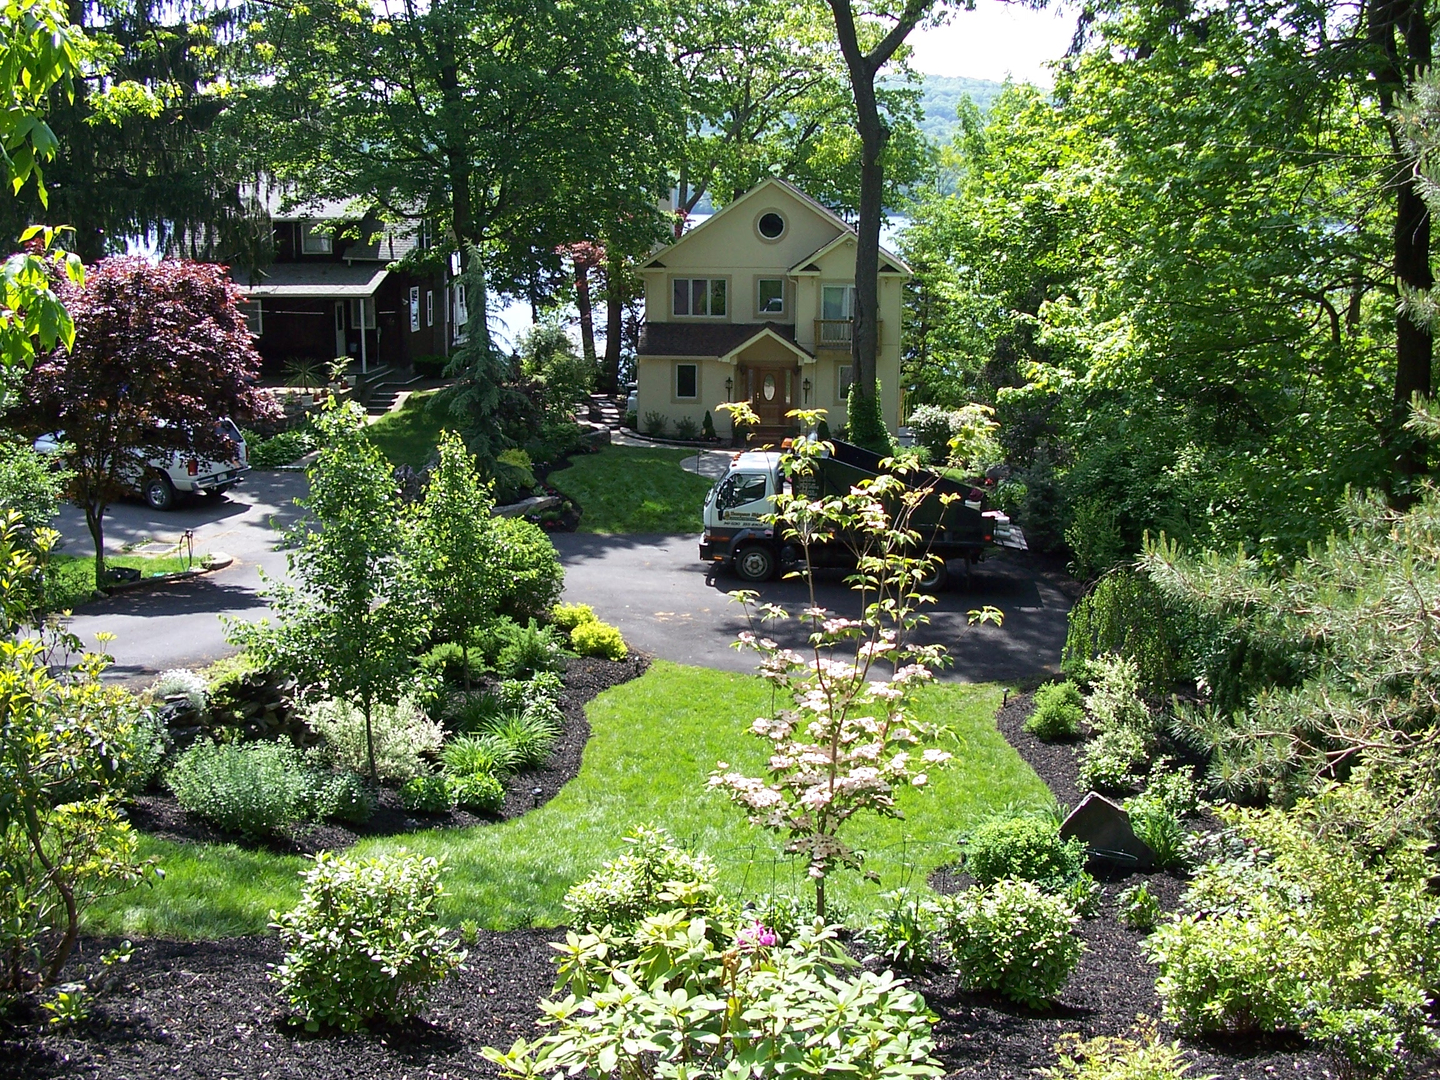 landscaper in orange county new york greater hudson valley area